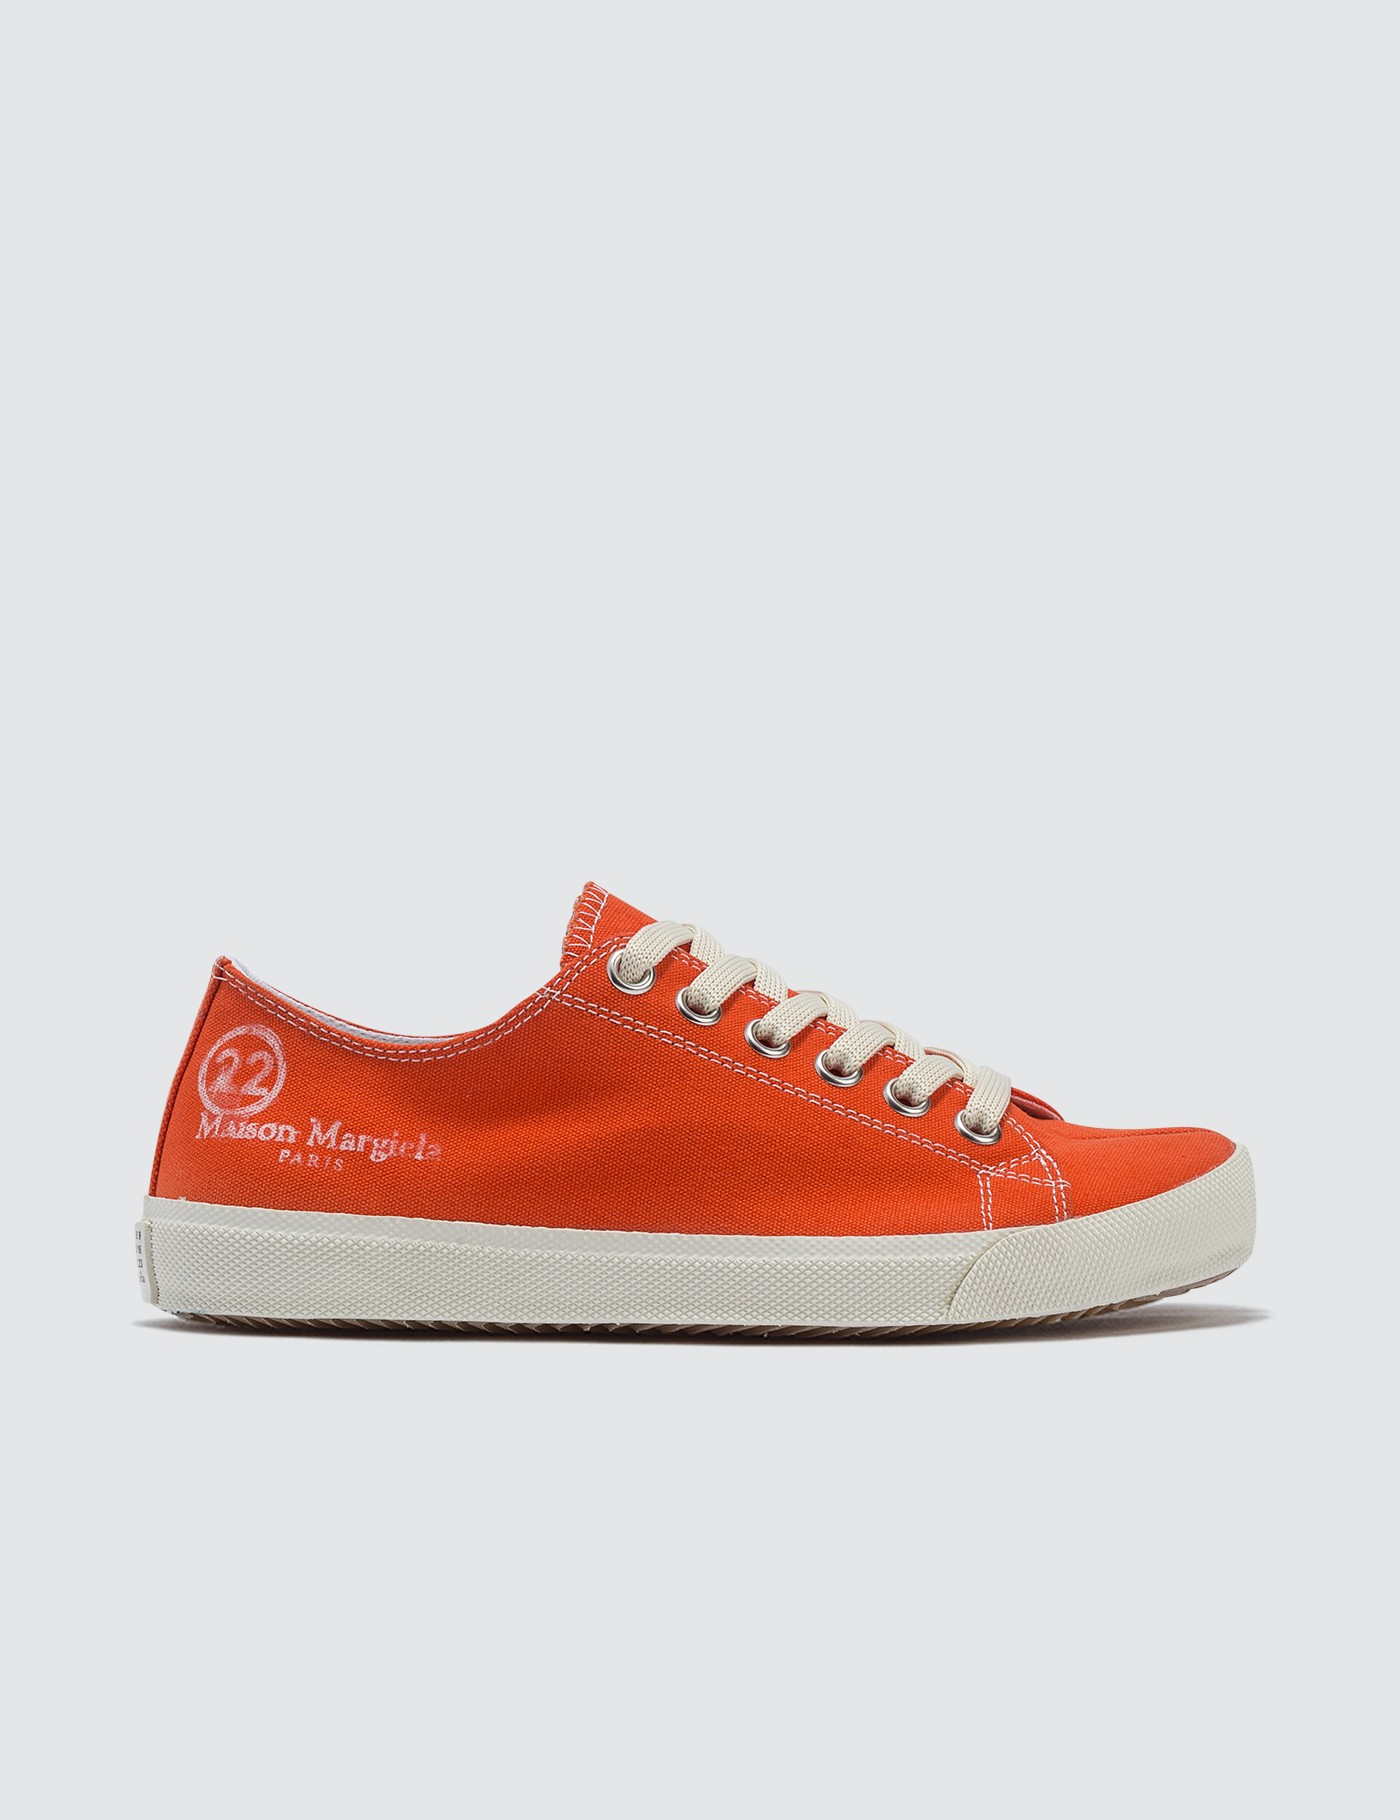 6c1ad7cb6df Tabi Canvas Sneakers, Maison Margiela